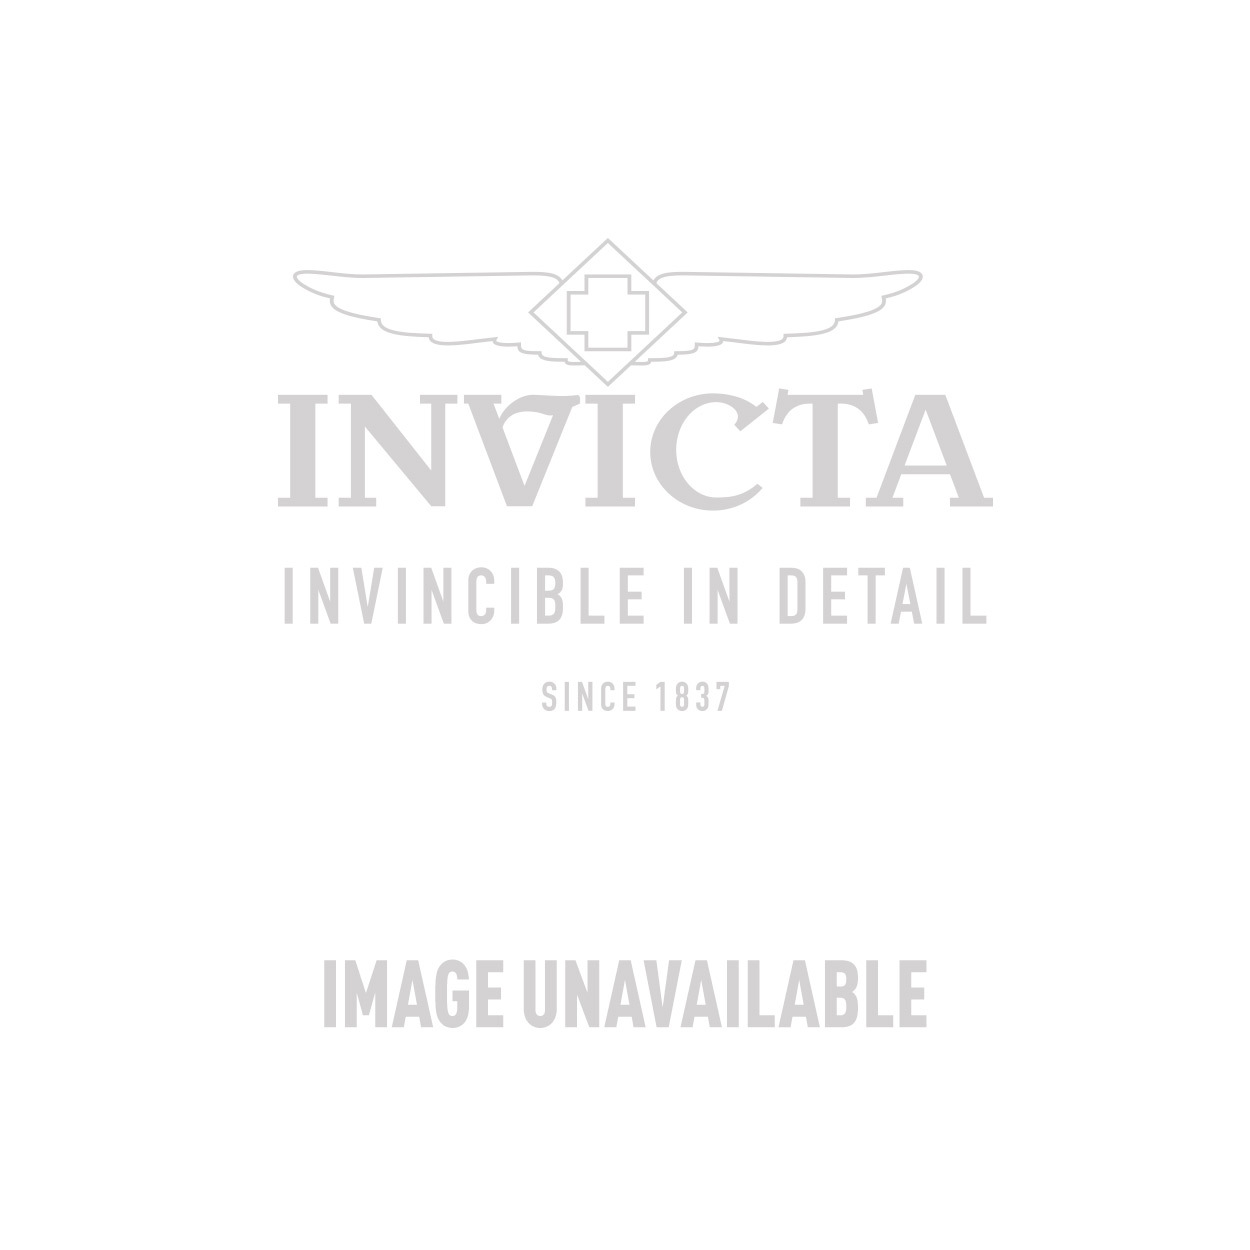 Invicta Specialty Swiss Movement Quartz Watch - Stainless Steel case Stainless Steel band - Model 0621